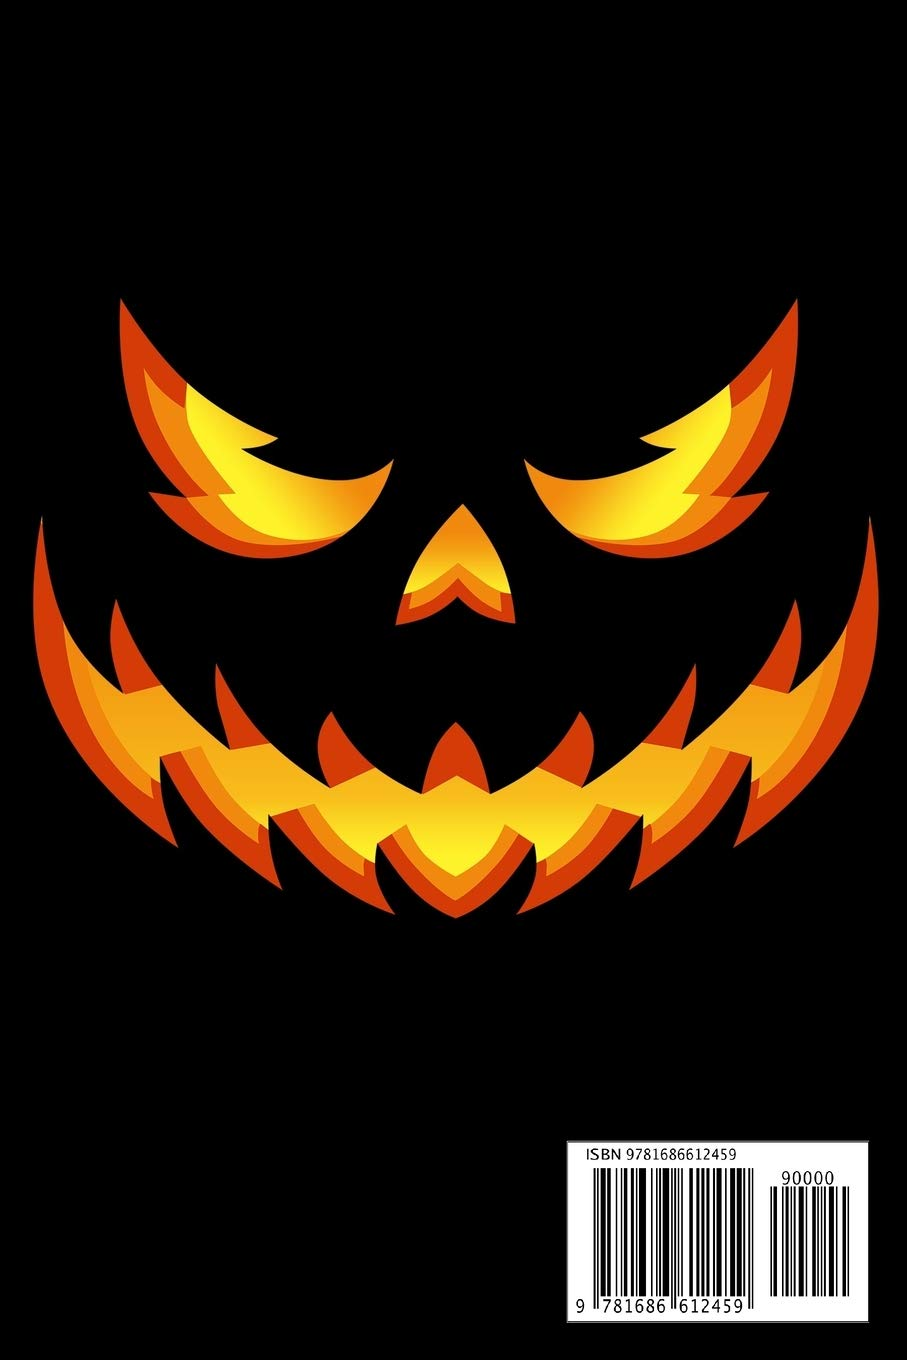 Journal Pumpkin Evil Smile Creepy Grin Jack O Lantern Halloween Black Lined Notebook Writing Diary 120 Pages 6 X 9 Ingenius Publications 9781686612459 Amazon Com Books Looking for the best evil smile wallpaper? journal pumpkin evil smile creepy grin